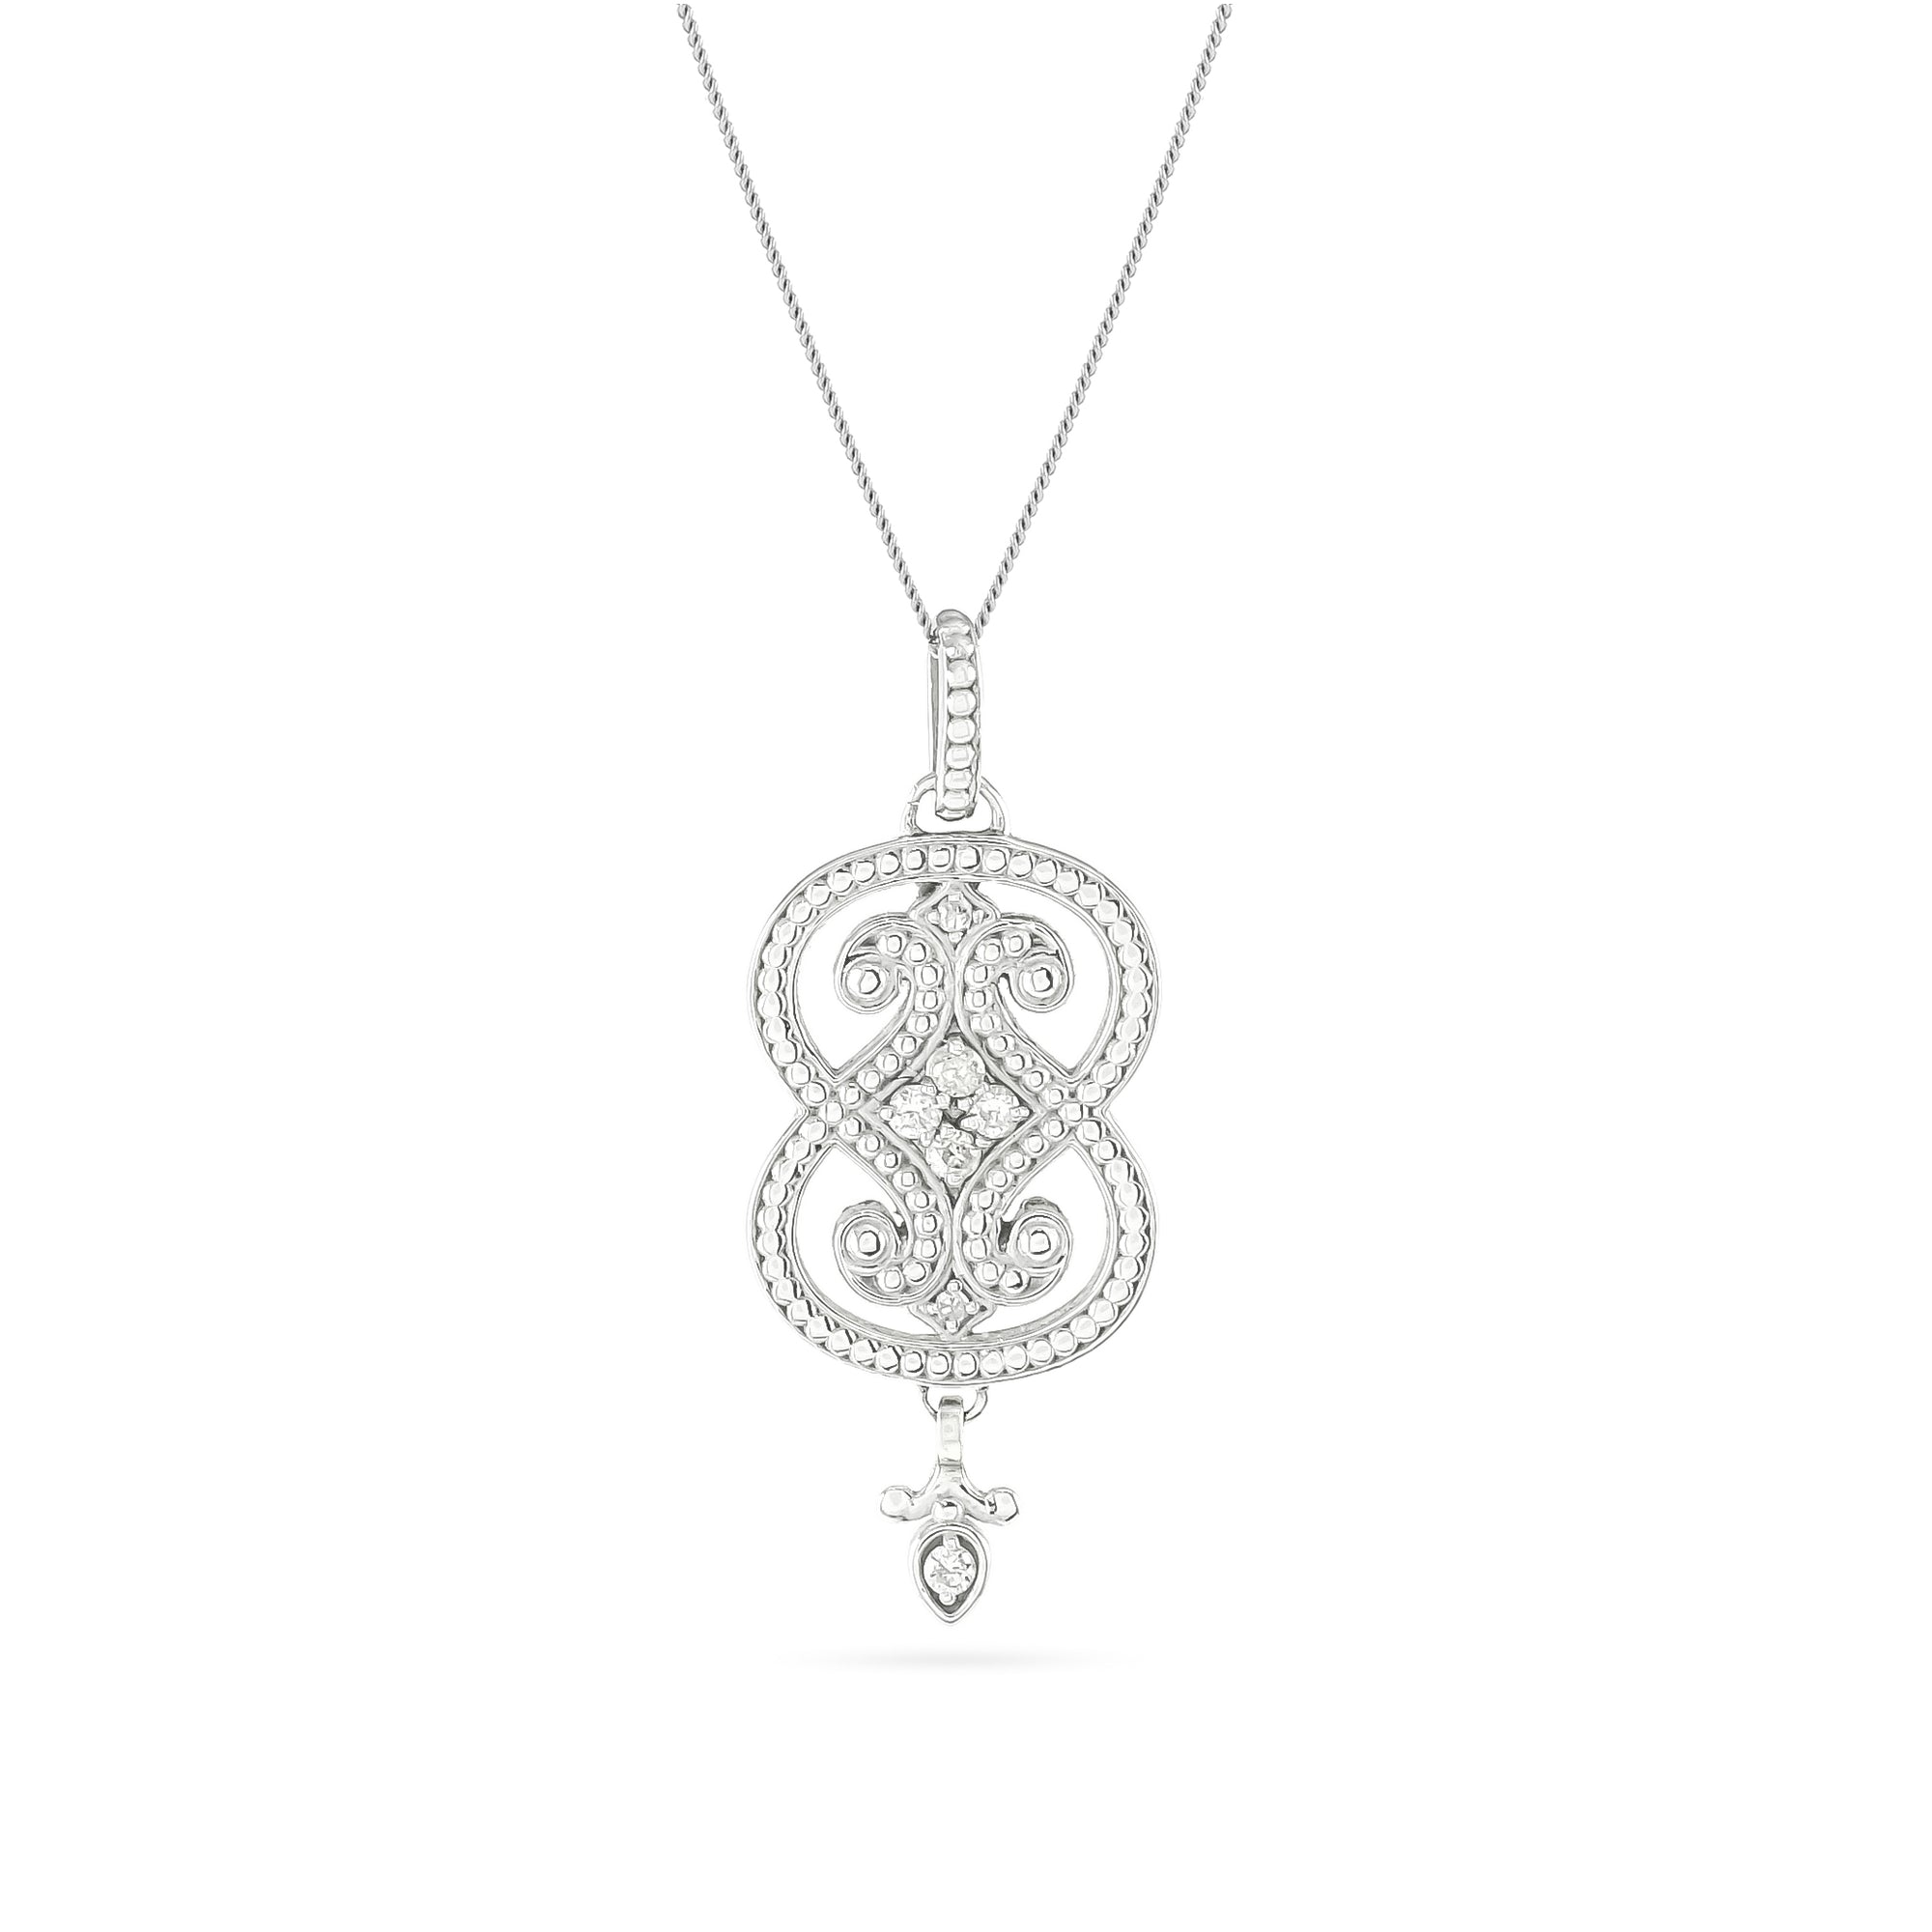 14ct White Gold Seven Stone Diamond Pendant